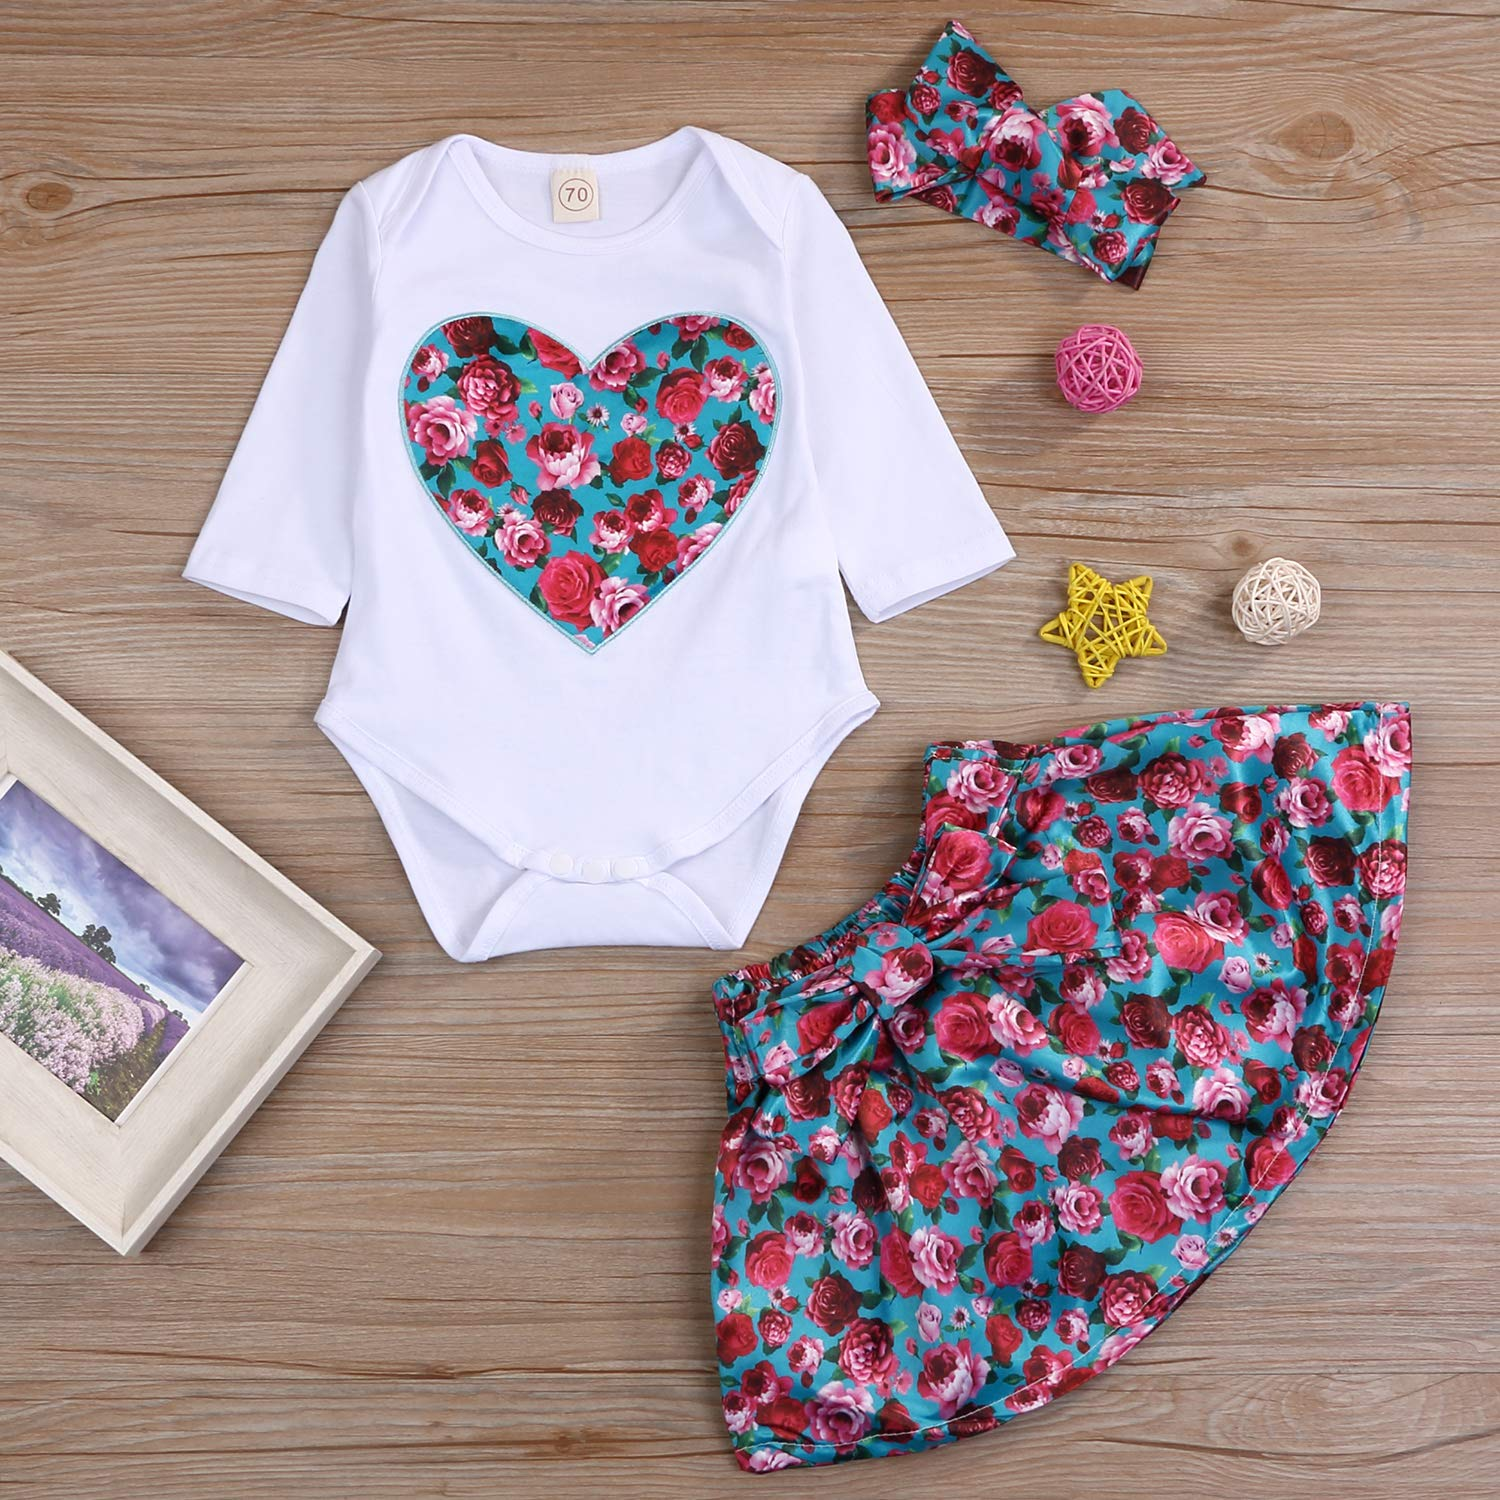 New Born Baby Girls Floral Outfits Rose Heart Printed Romper White Toddler Long Sleeve top Romper and Skirt with Headband